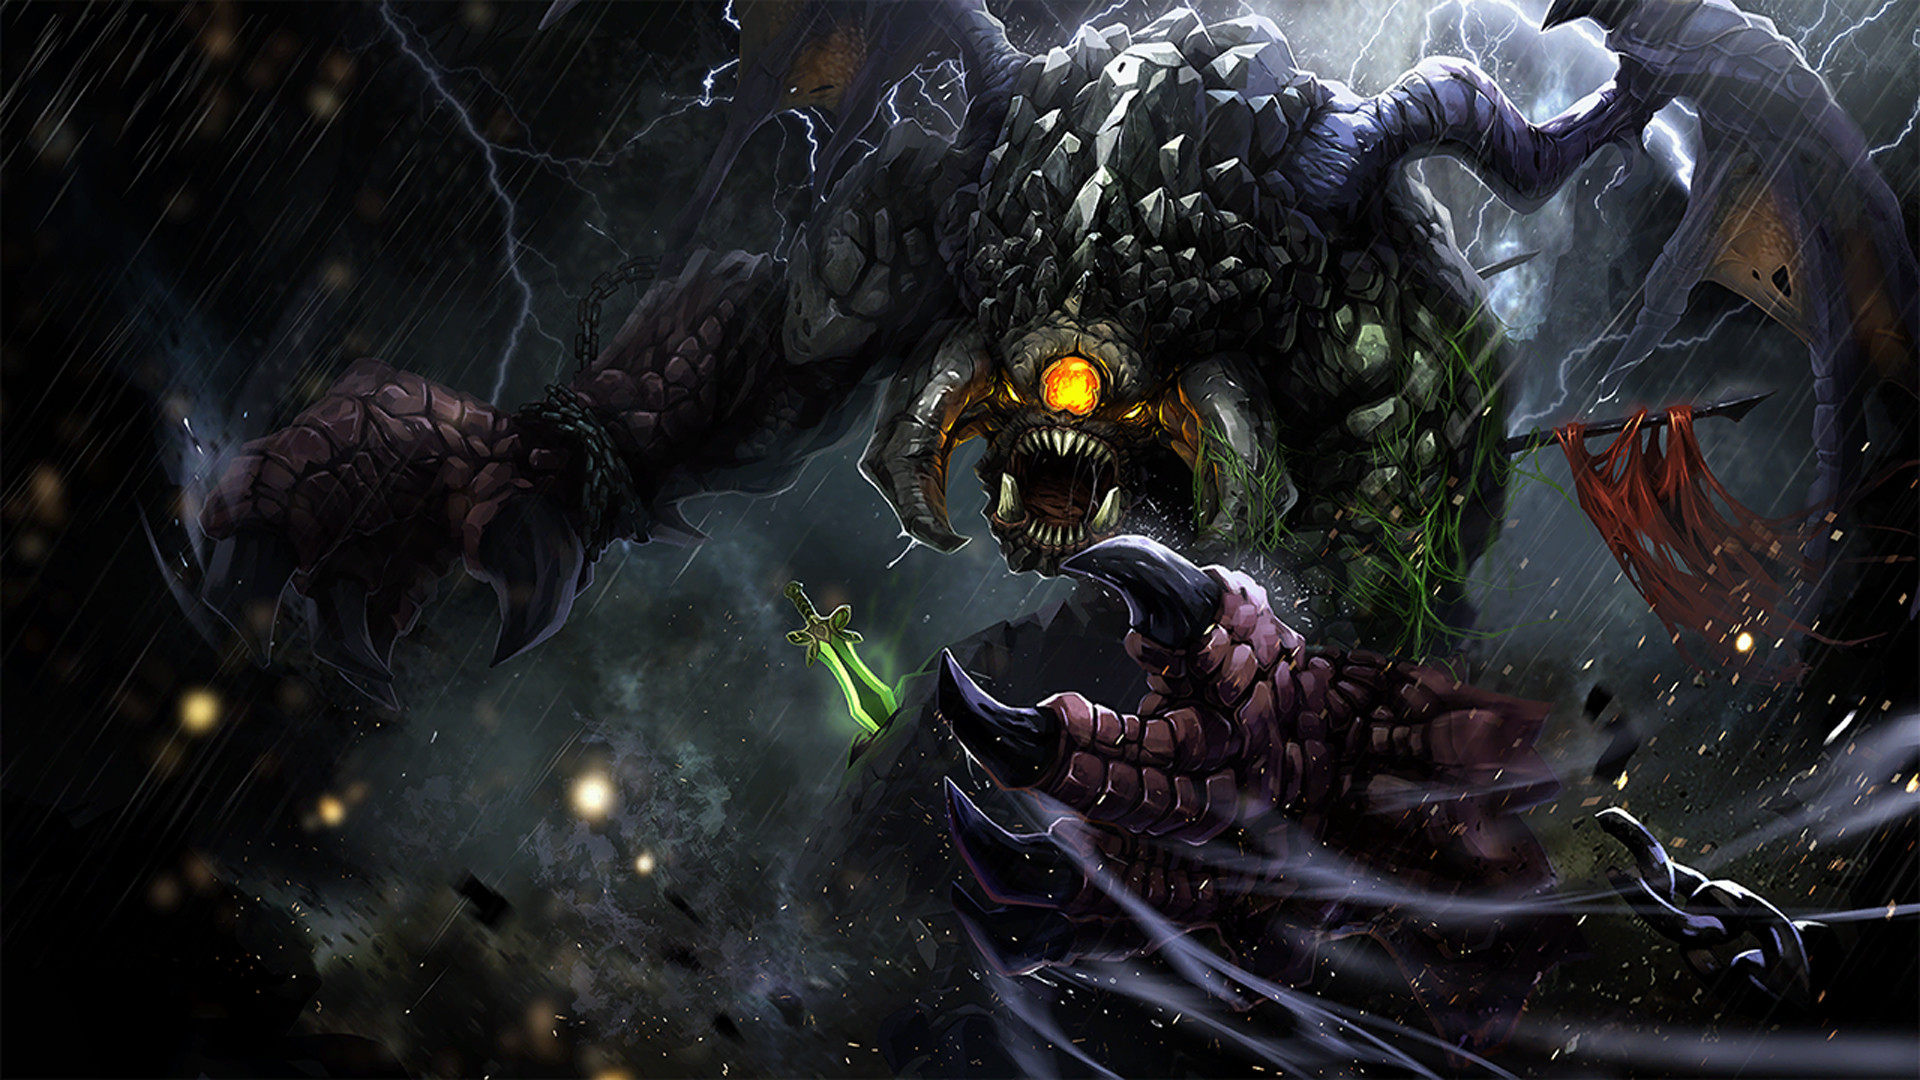 Dota 2 Hd Wallpaper Free Hd Dota 2 Wallpaper Dor Pc